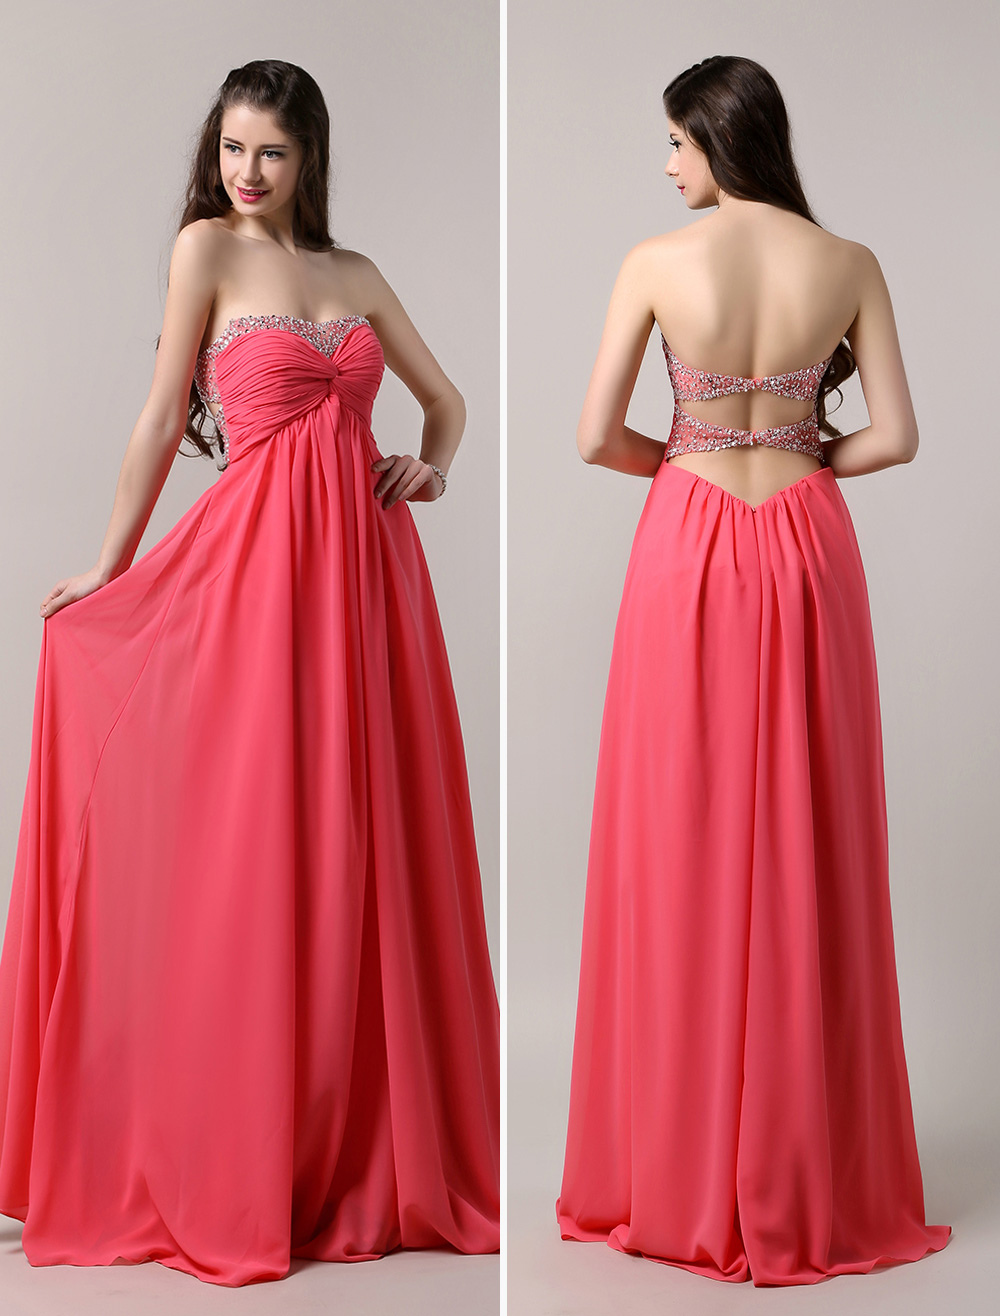 Strapless Sweetheart Chiffon Dress with Low Back